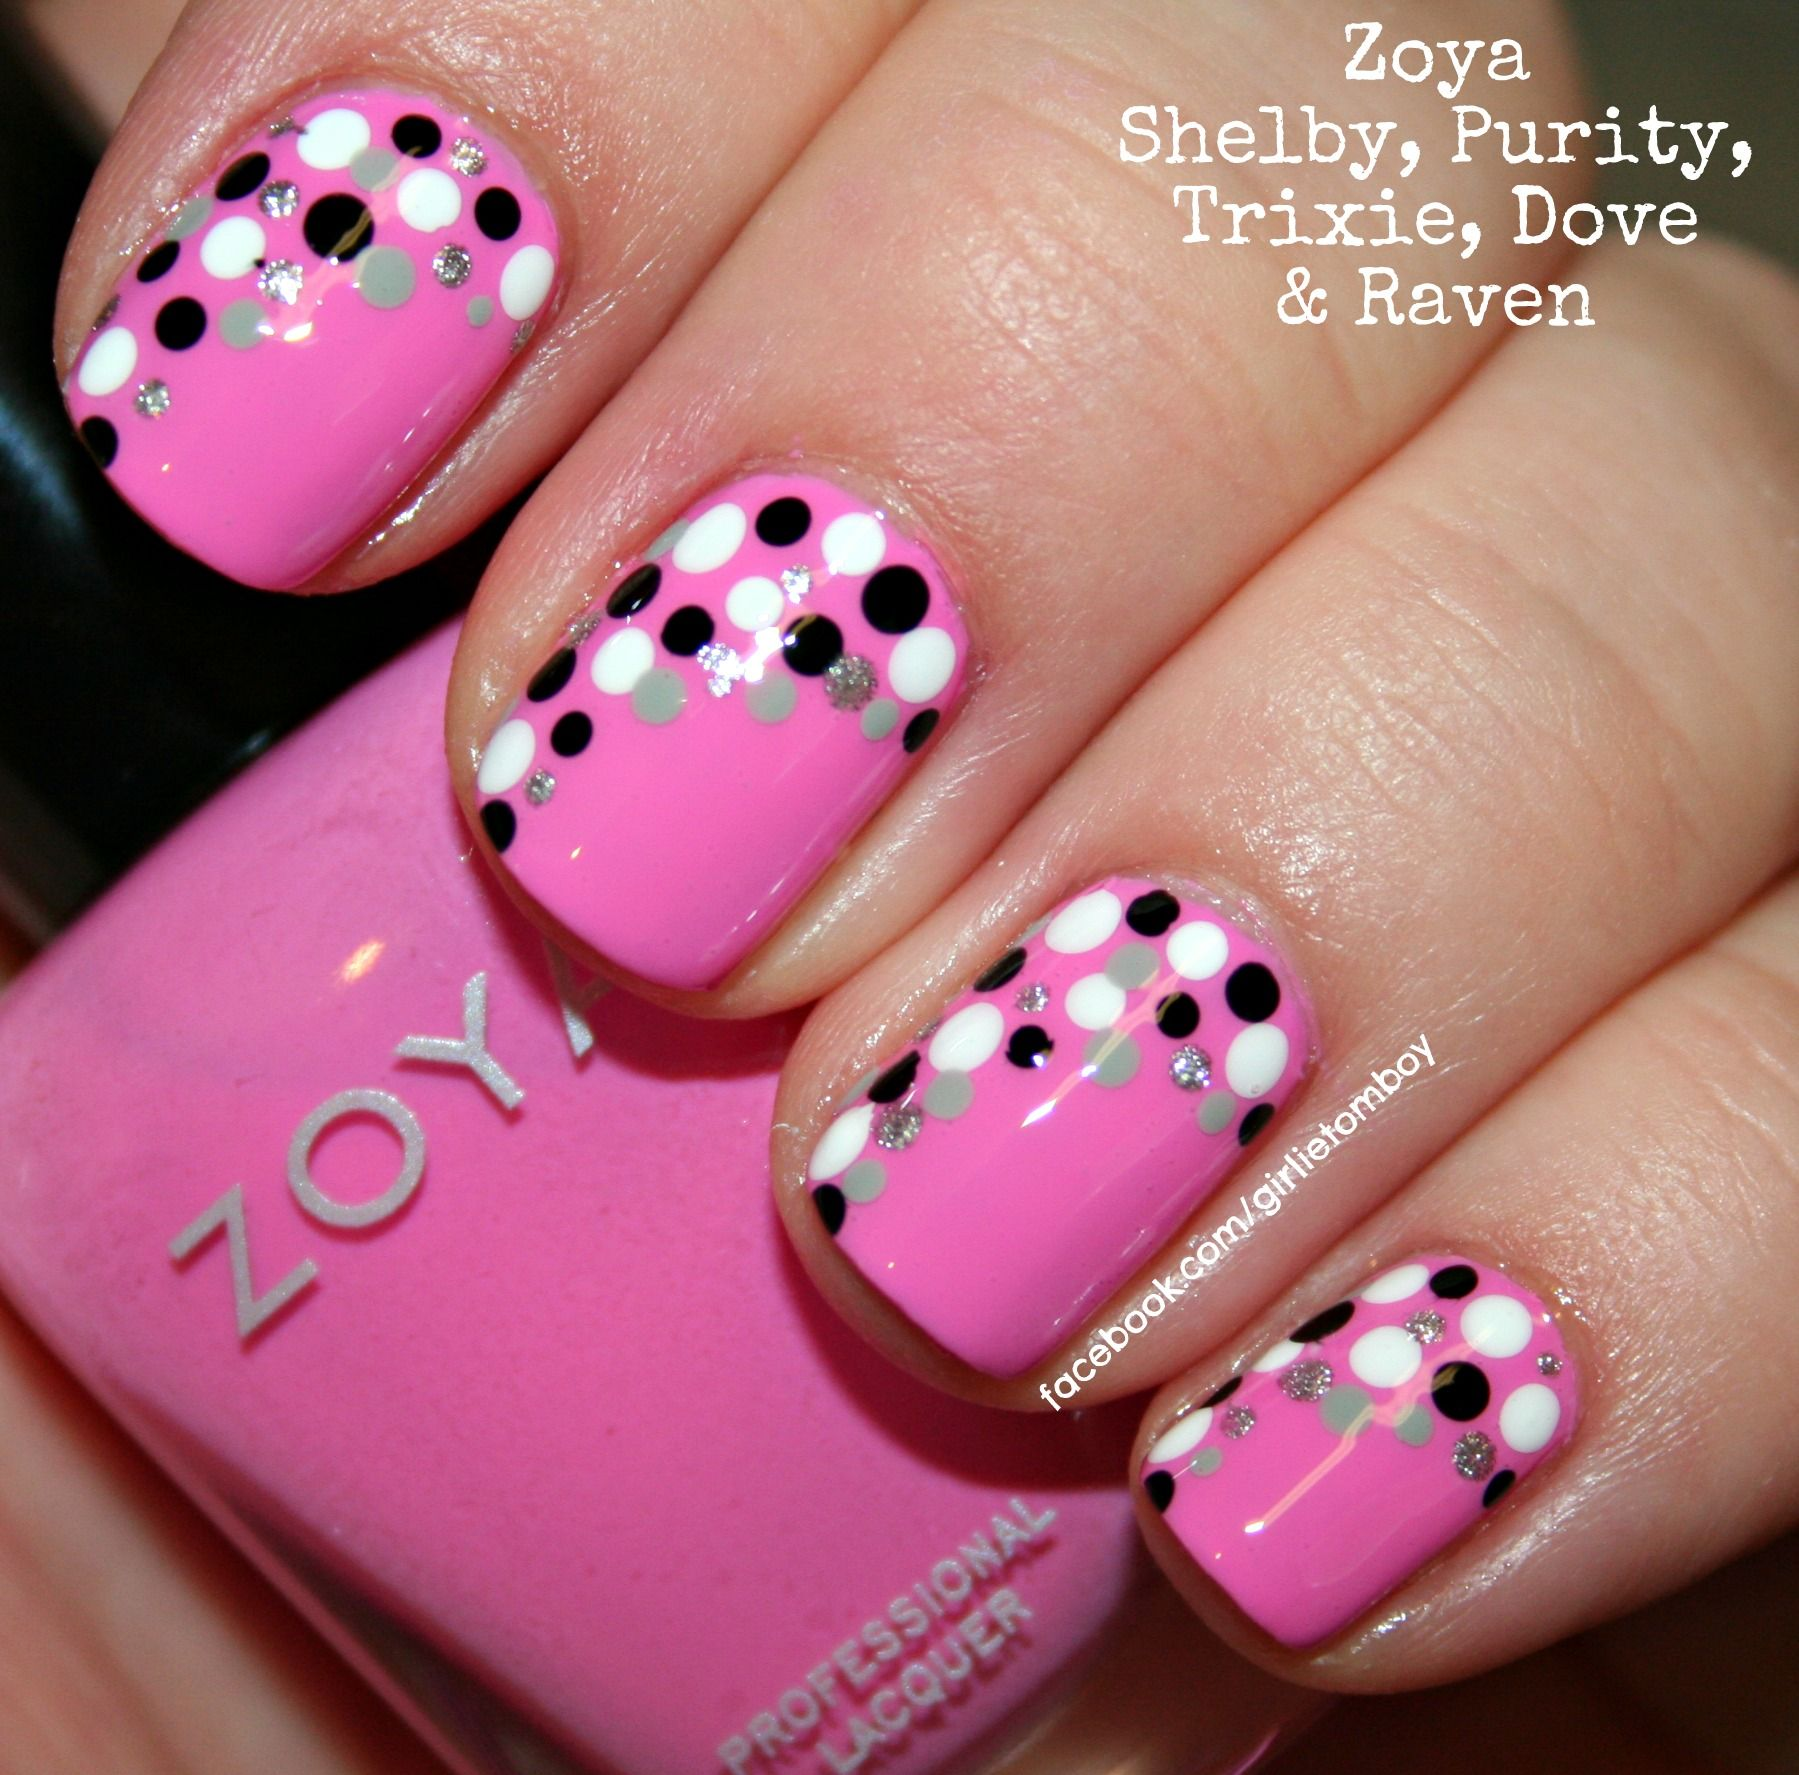 Pink nails with silver grey black and white dots nail art design pink nails with silver grey black and white dots nail art design prinsesfo Gallery